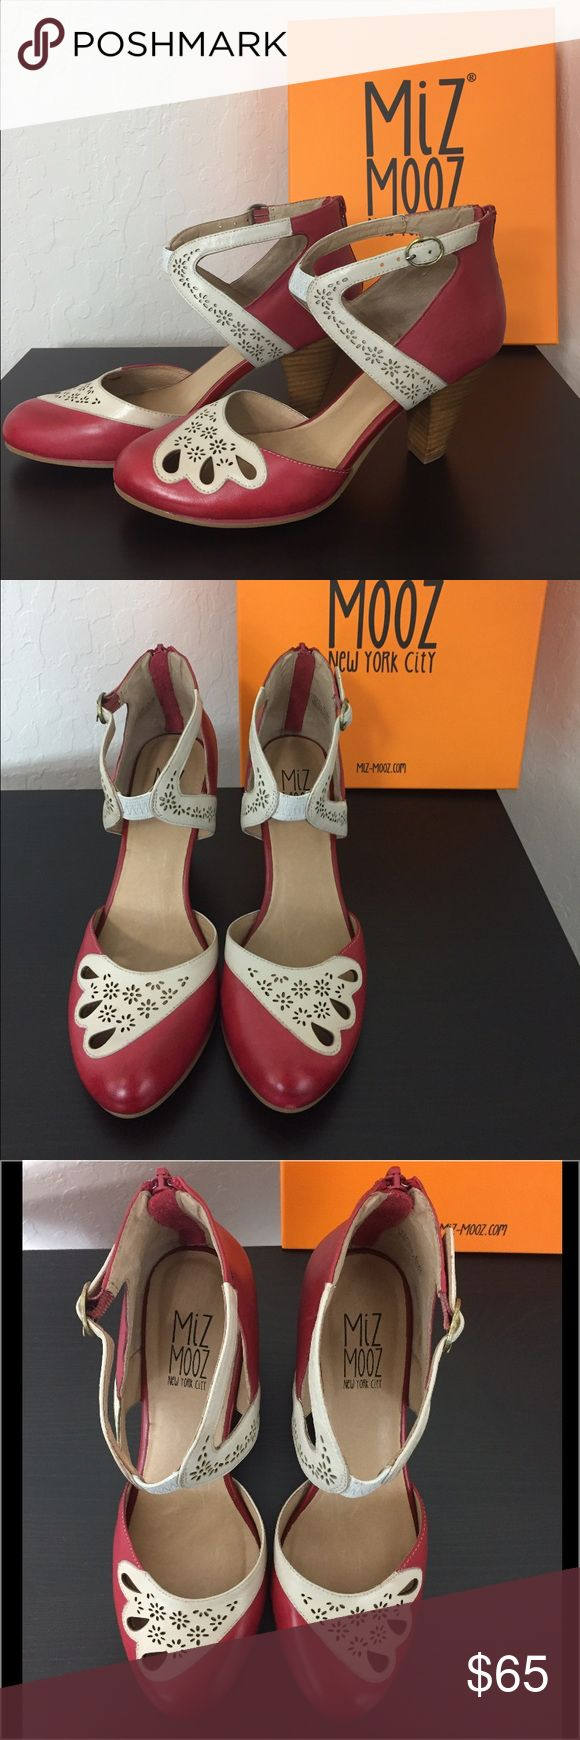 Red and cream Miz Mooz heels. Size 8. Brand new. Never worn. With box and taps. Super cute red and cream colored heels. Perfect for work or play! miz mooz Shoes Heels